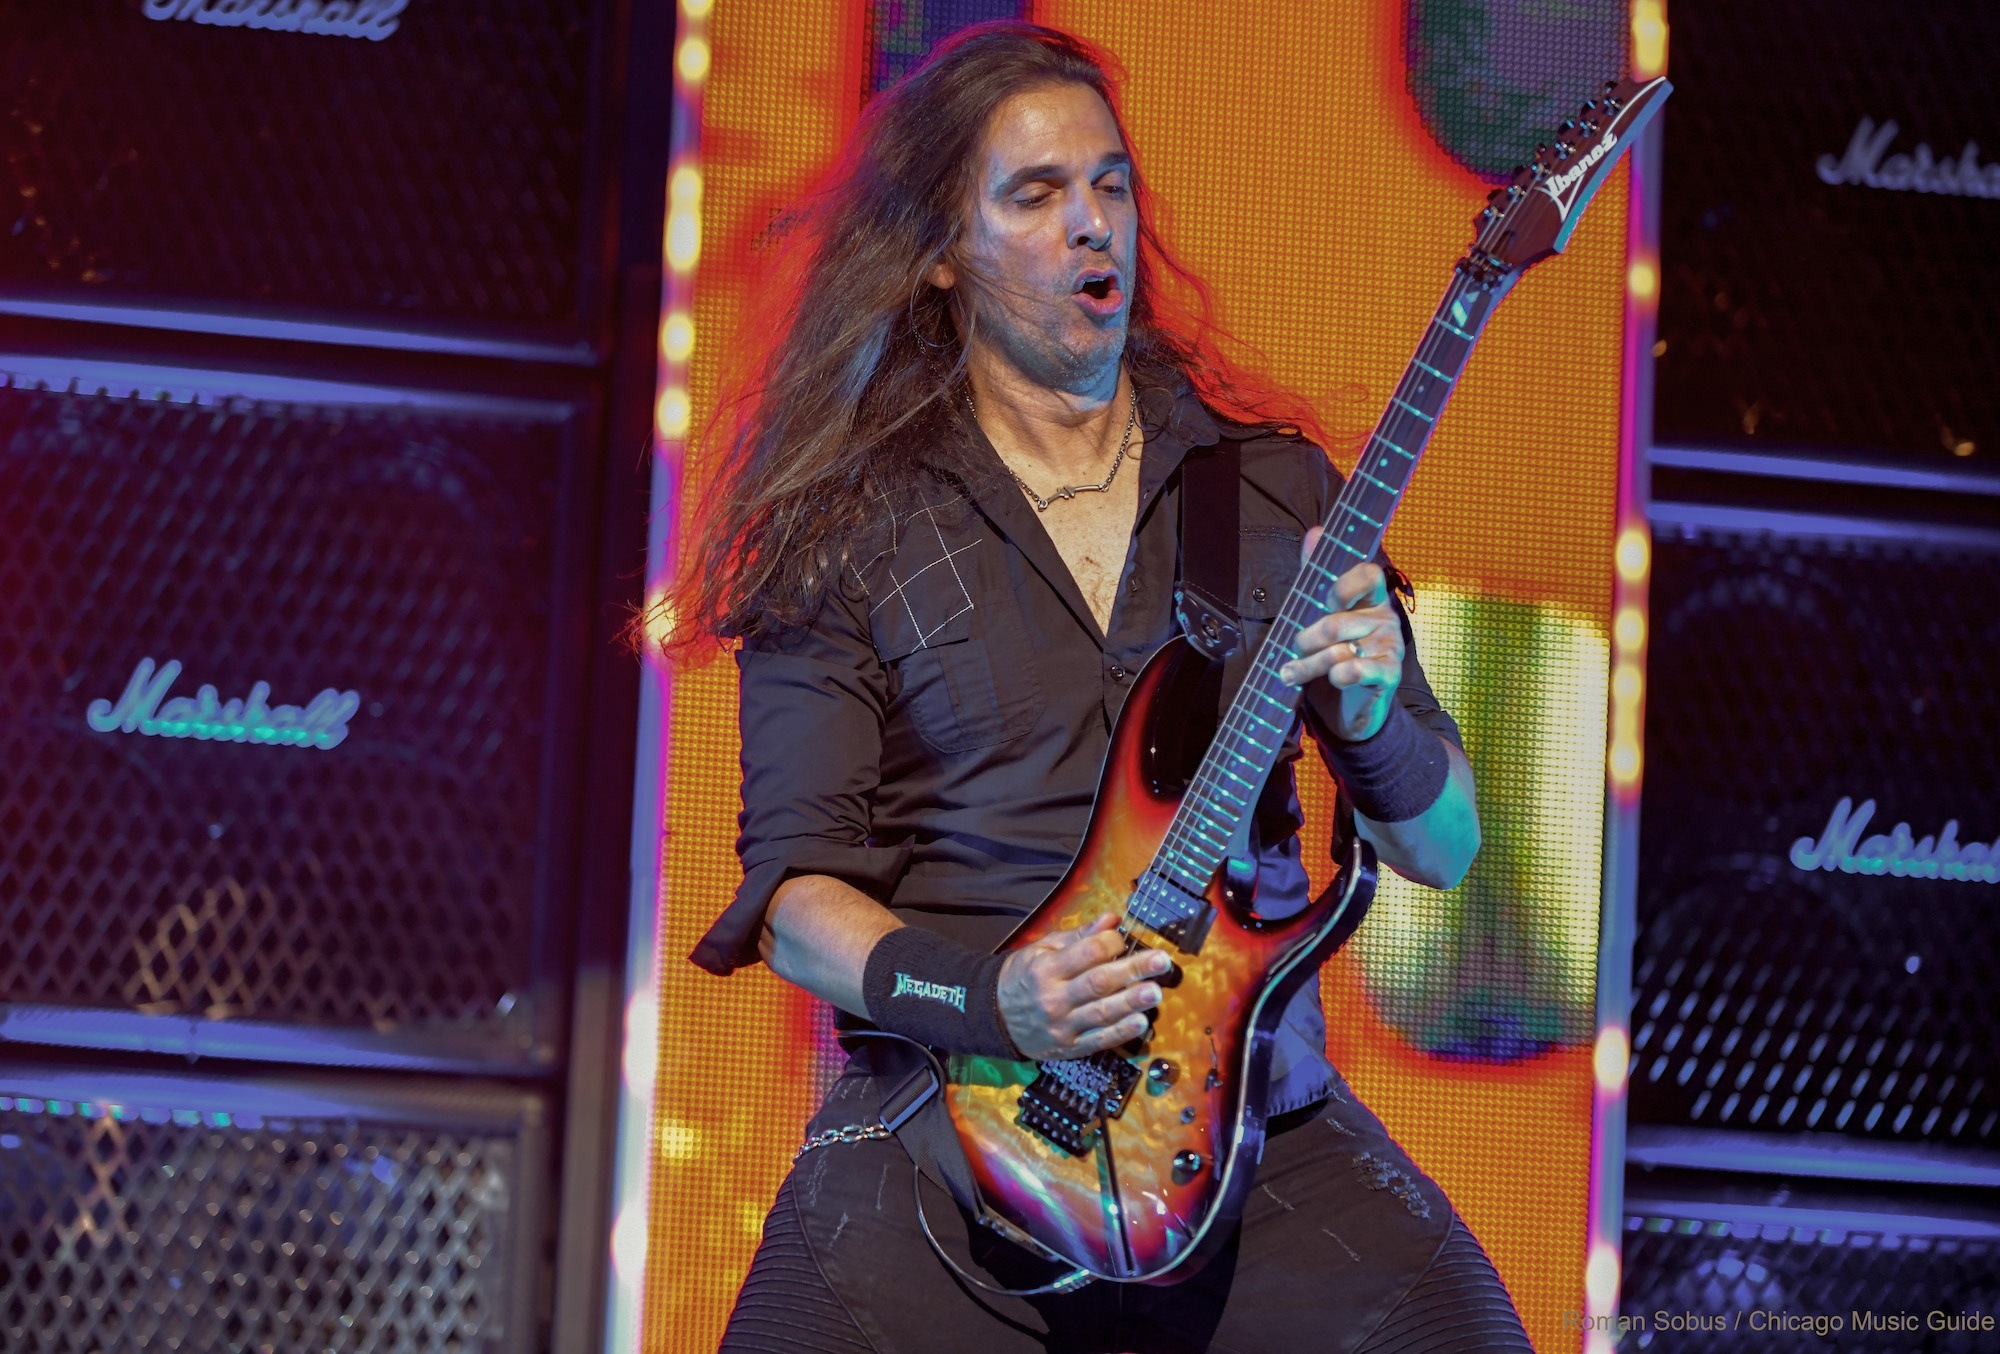 Megadeth Live at Hollywood Casino Amphitheatre [GALLERY] 4